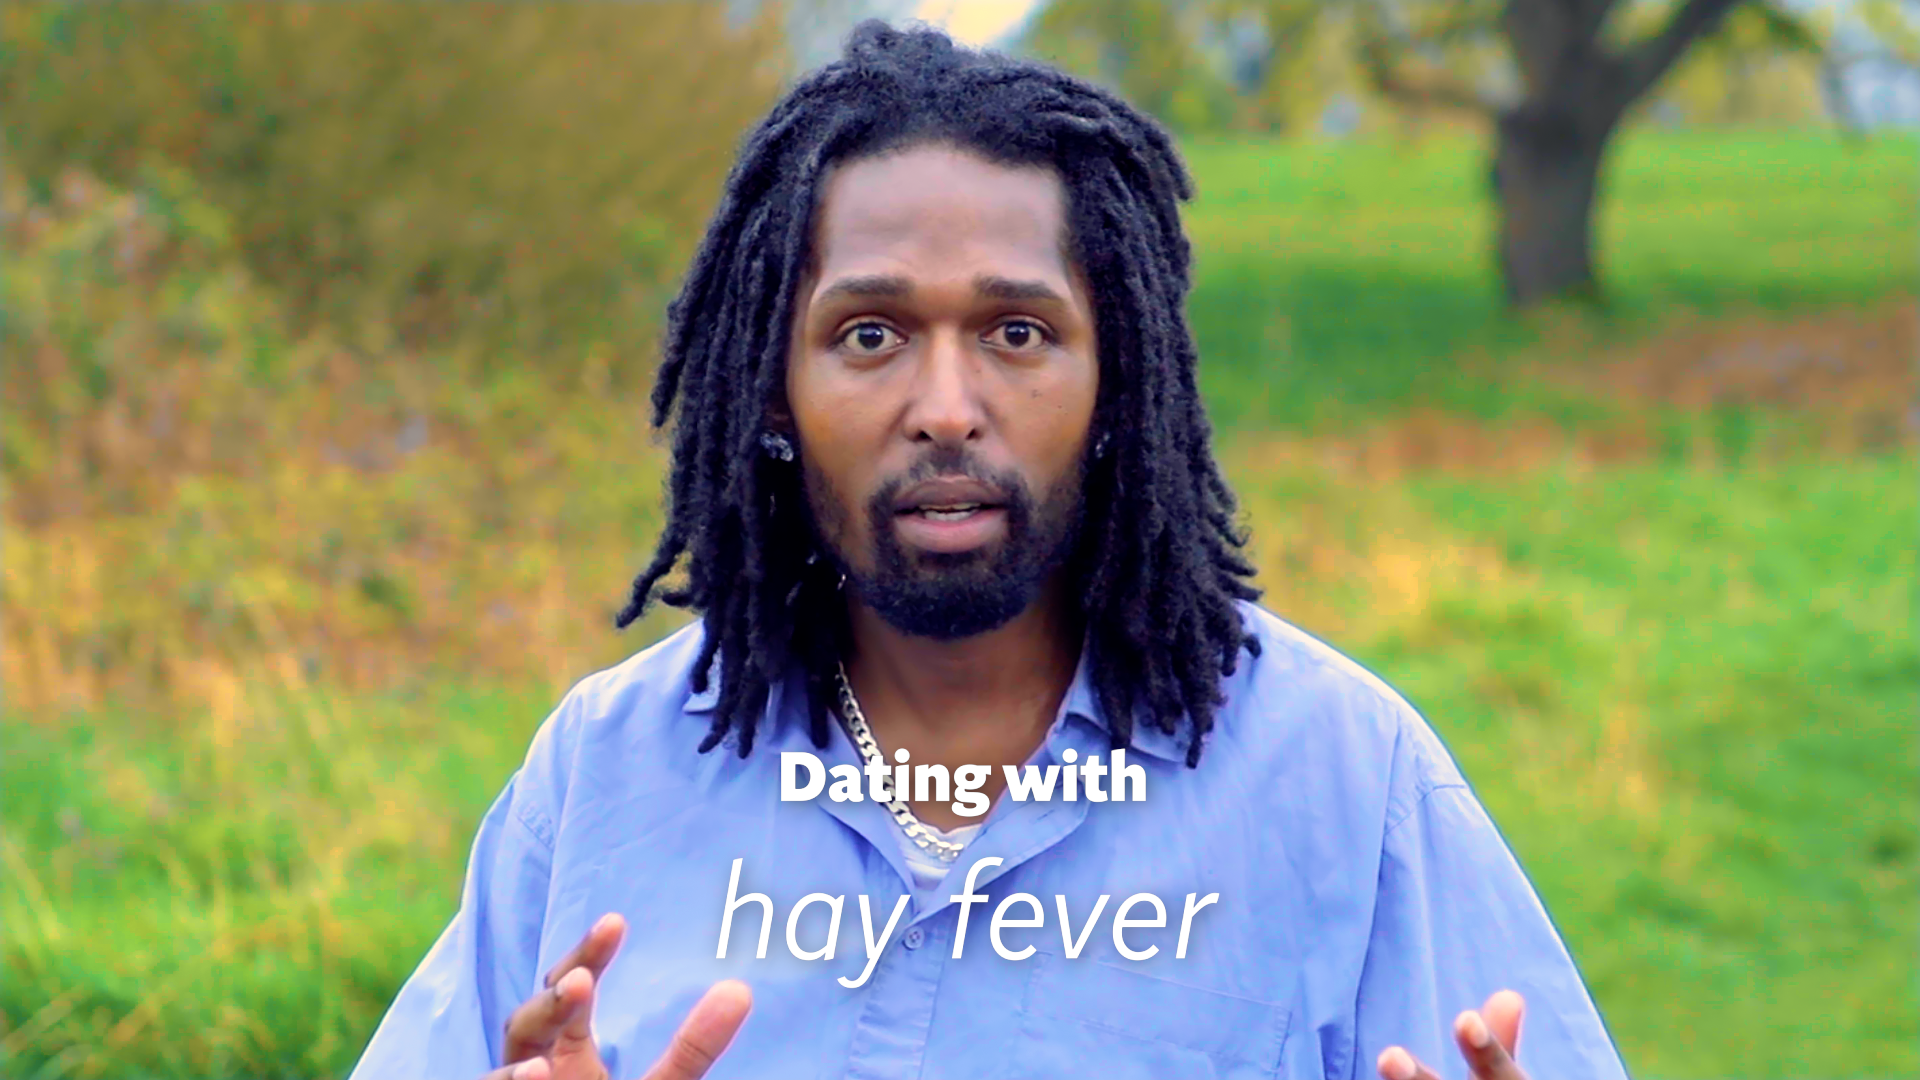 Hay fever dating disasters: From streaming eyes to badly-timed sneezes